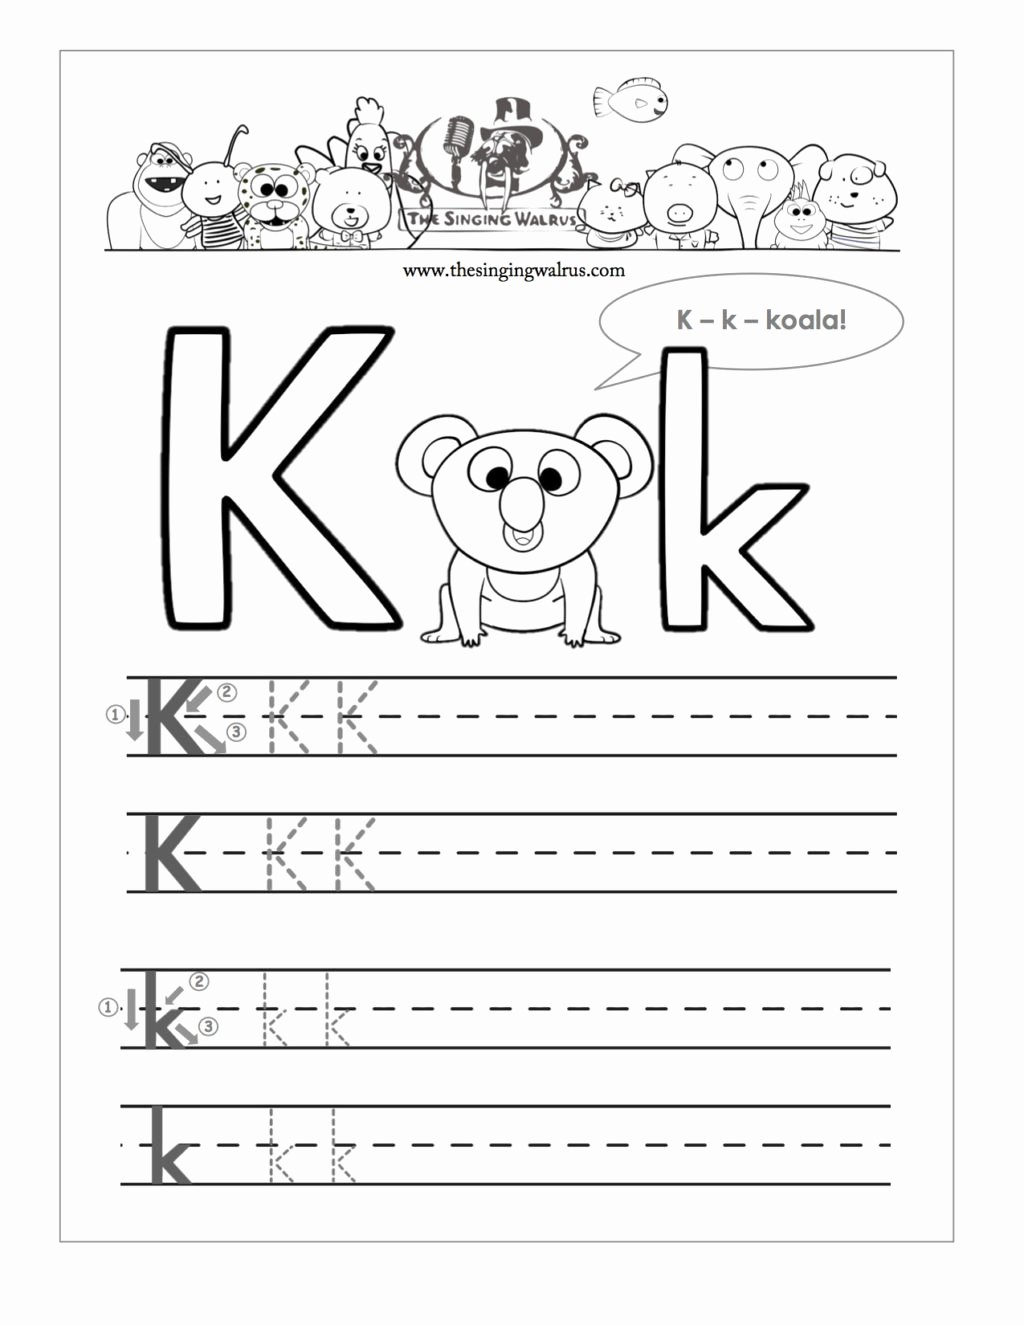 Worksheets for Preschoolers On Letters top Worksheet Free Printable Letter K Barka astonishing